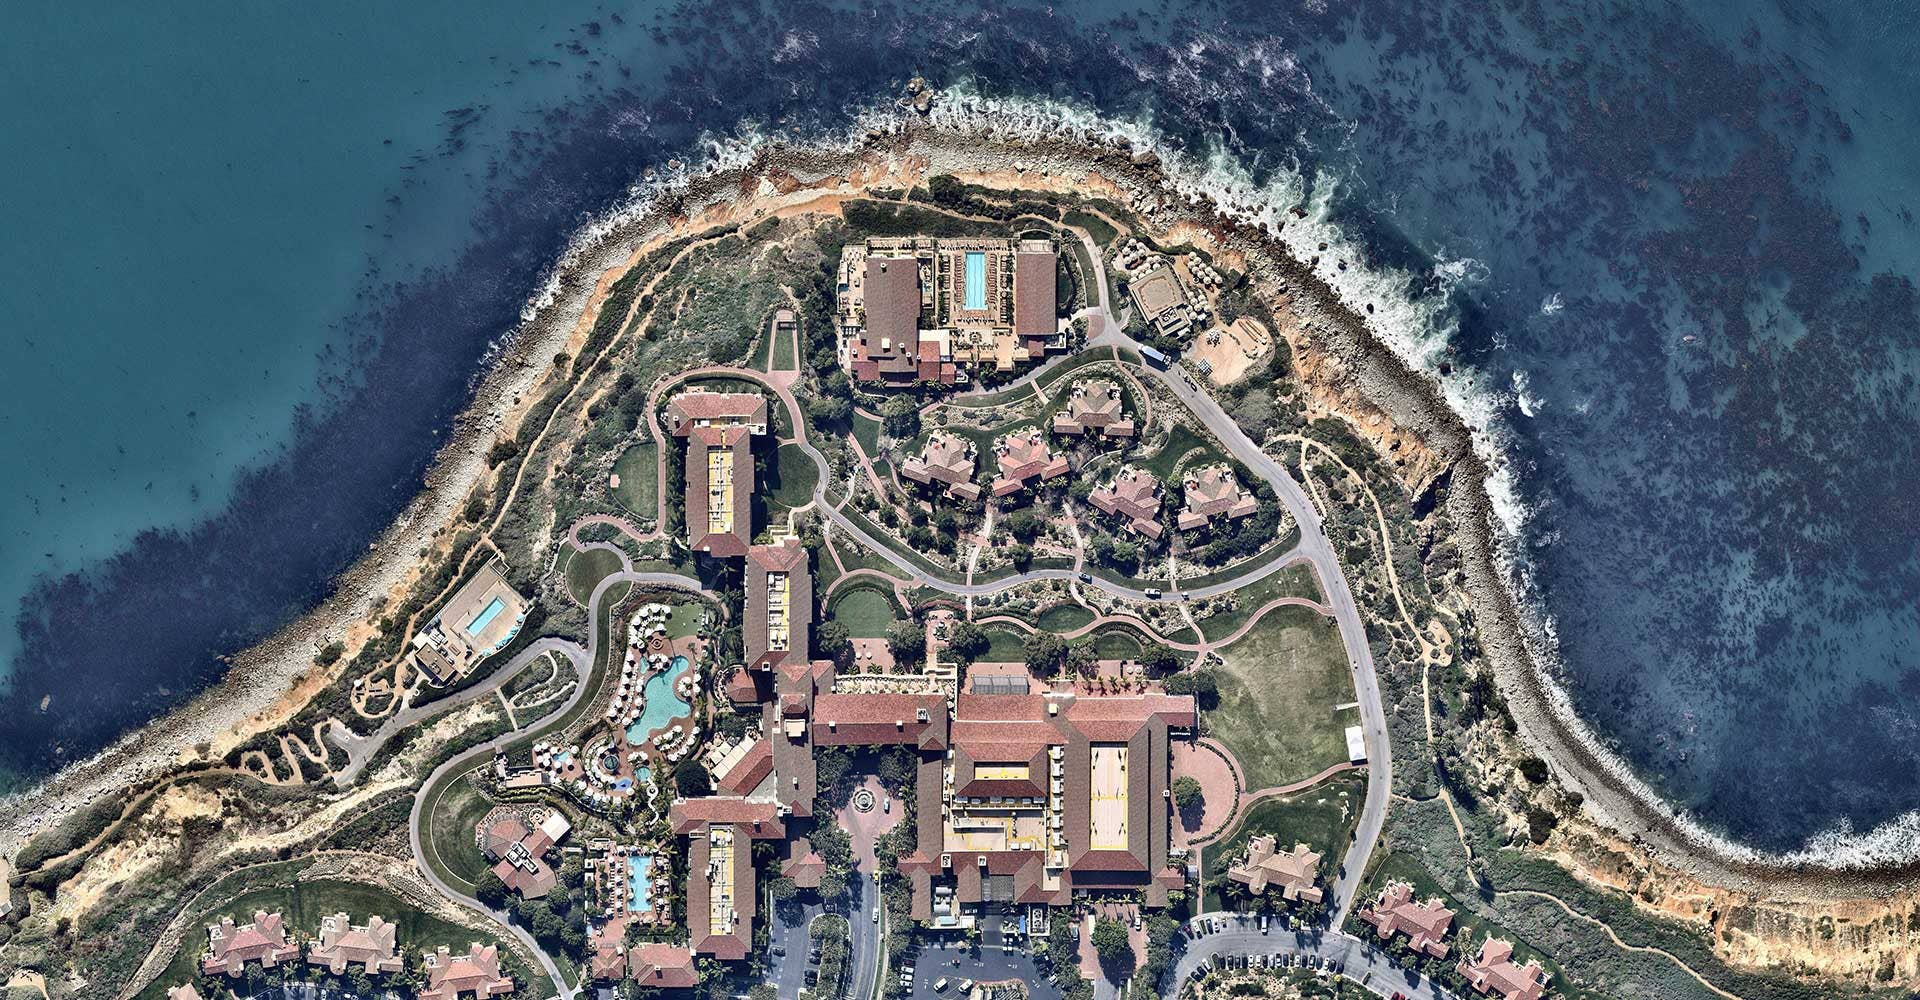 High resolution aerial image of resort in Rancho Palos Verdes, California